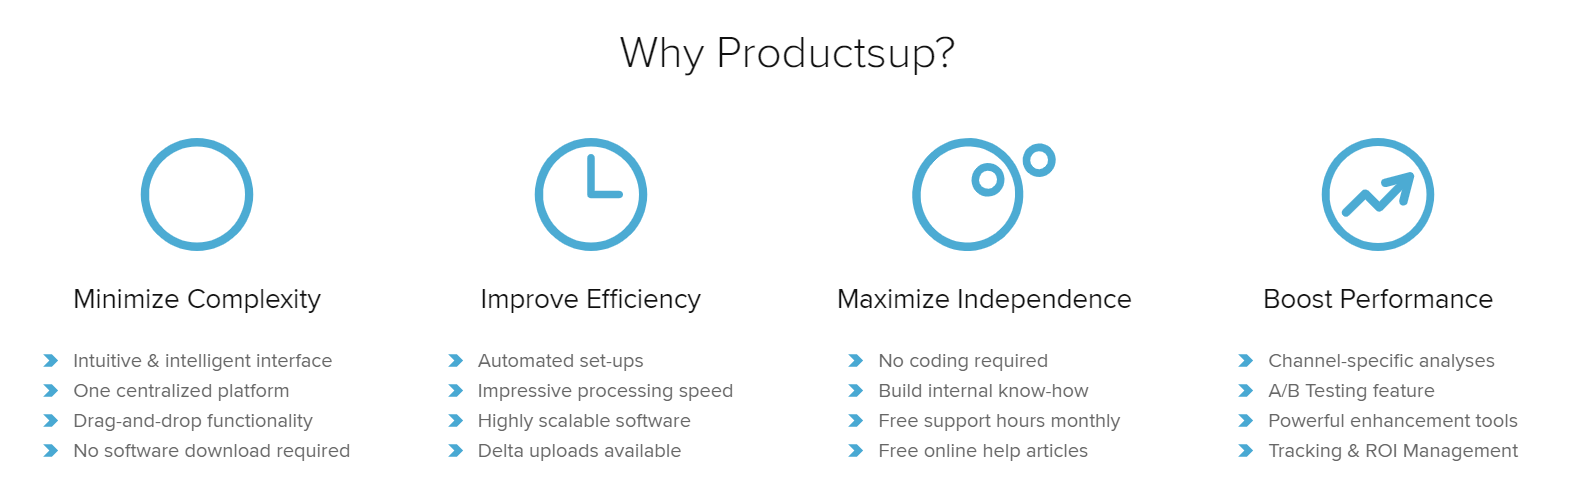 productsup inventory management software